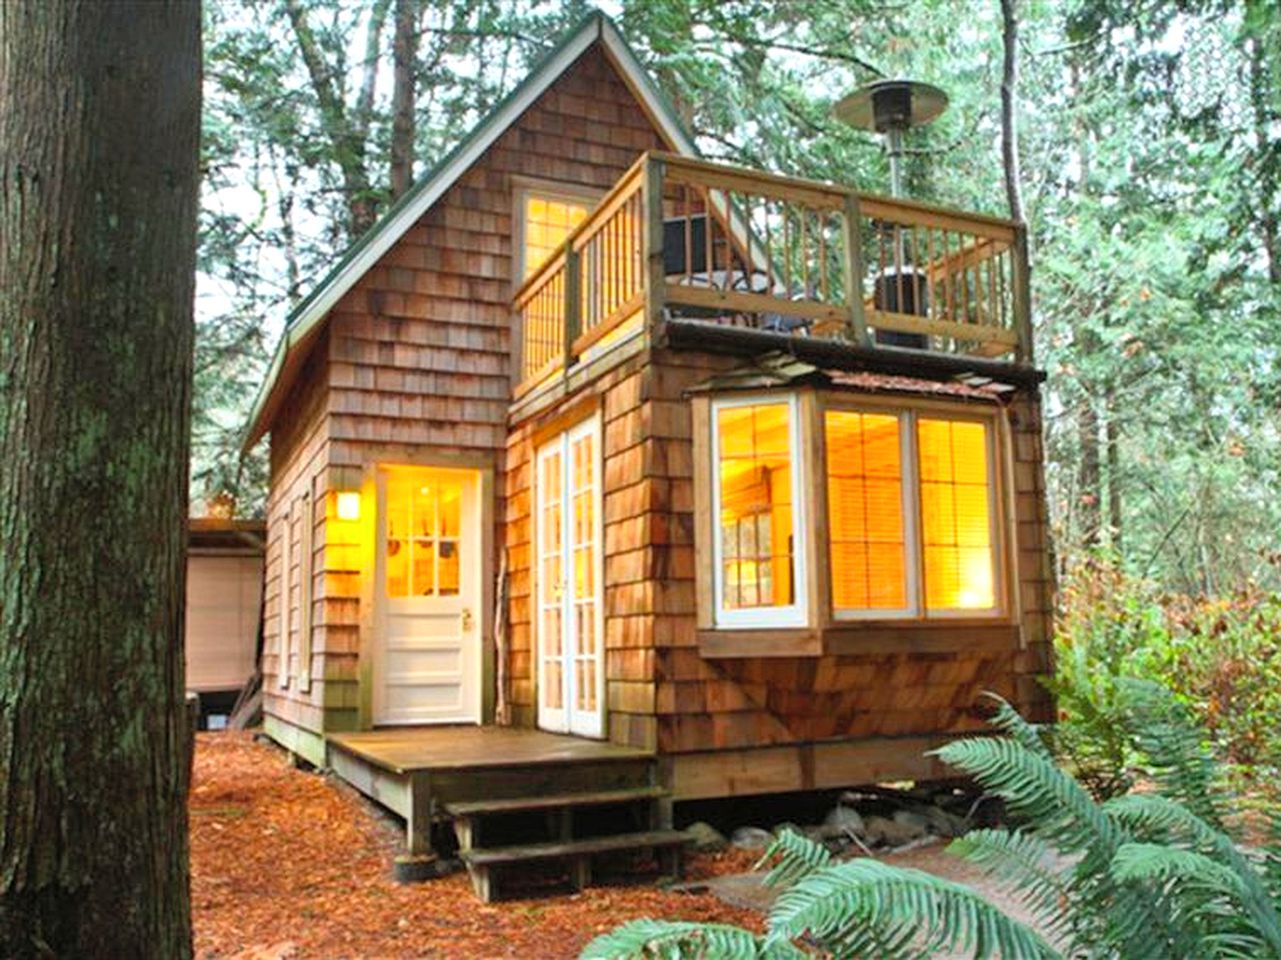 Cabins (Point Roberts, Washington, United States)